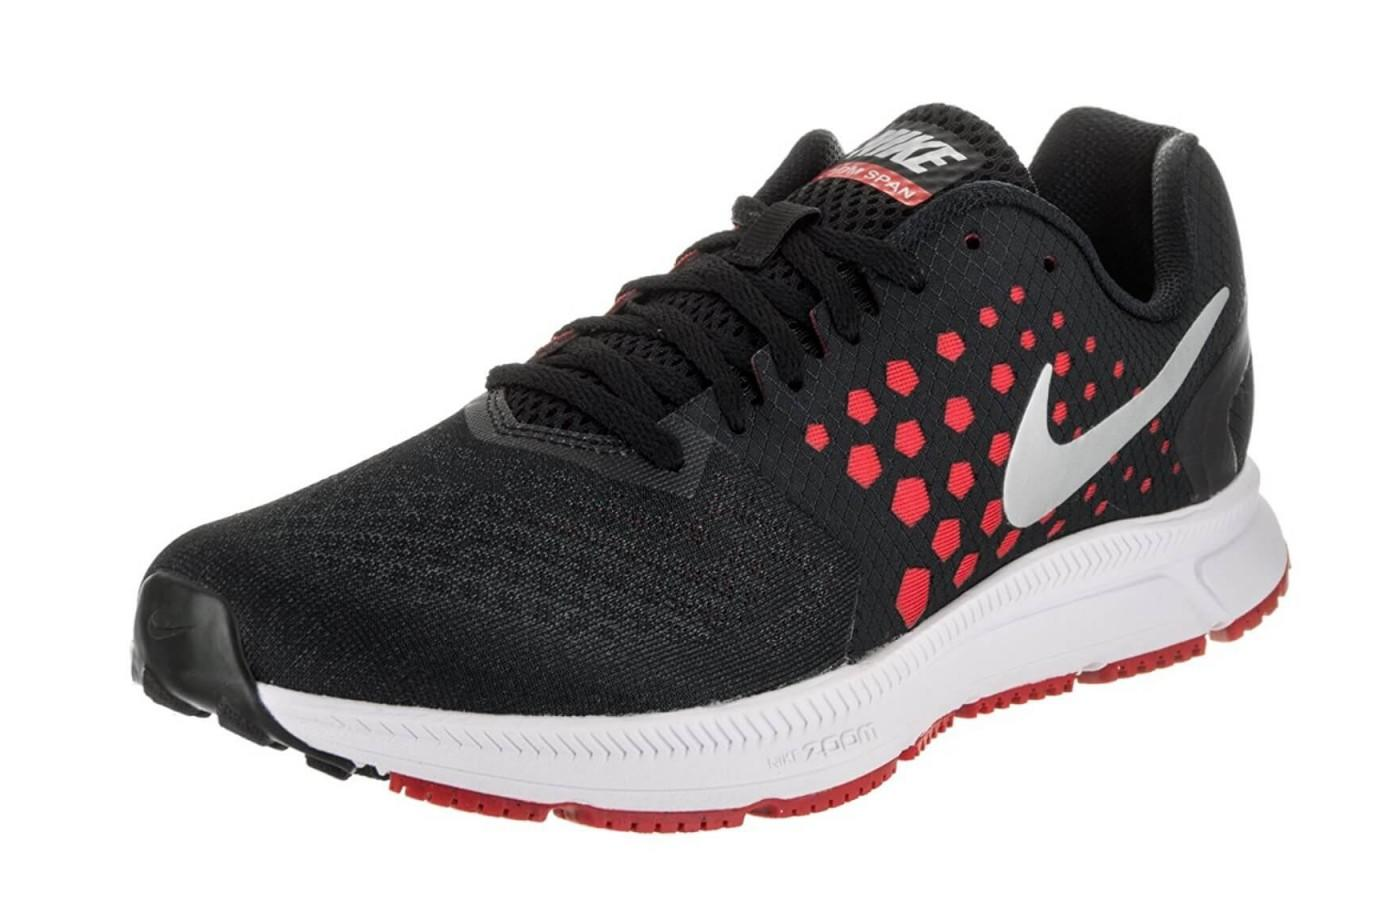 The Air Zoom Span is a stylish shoe